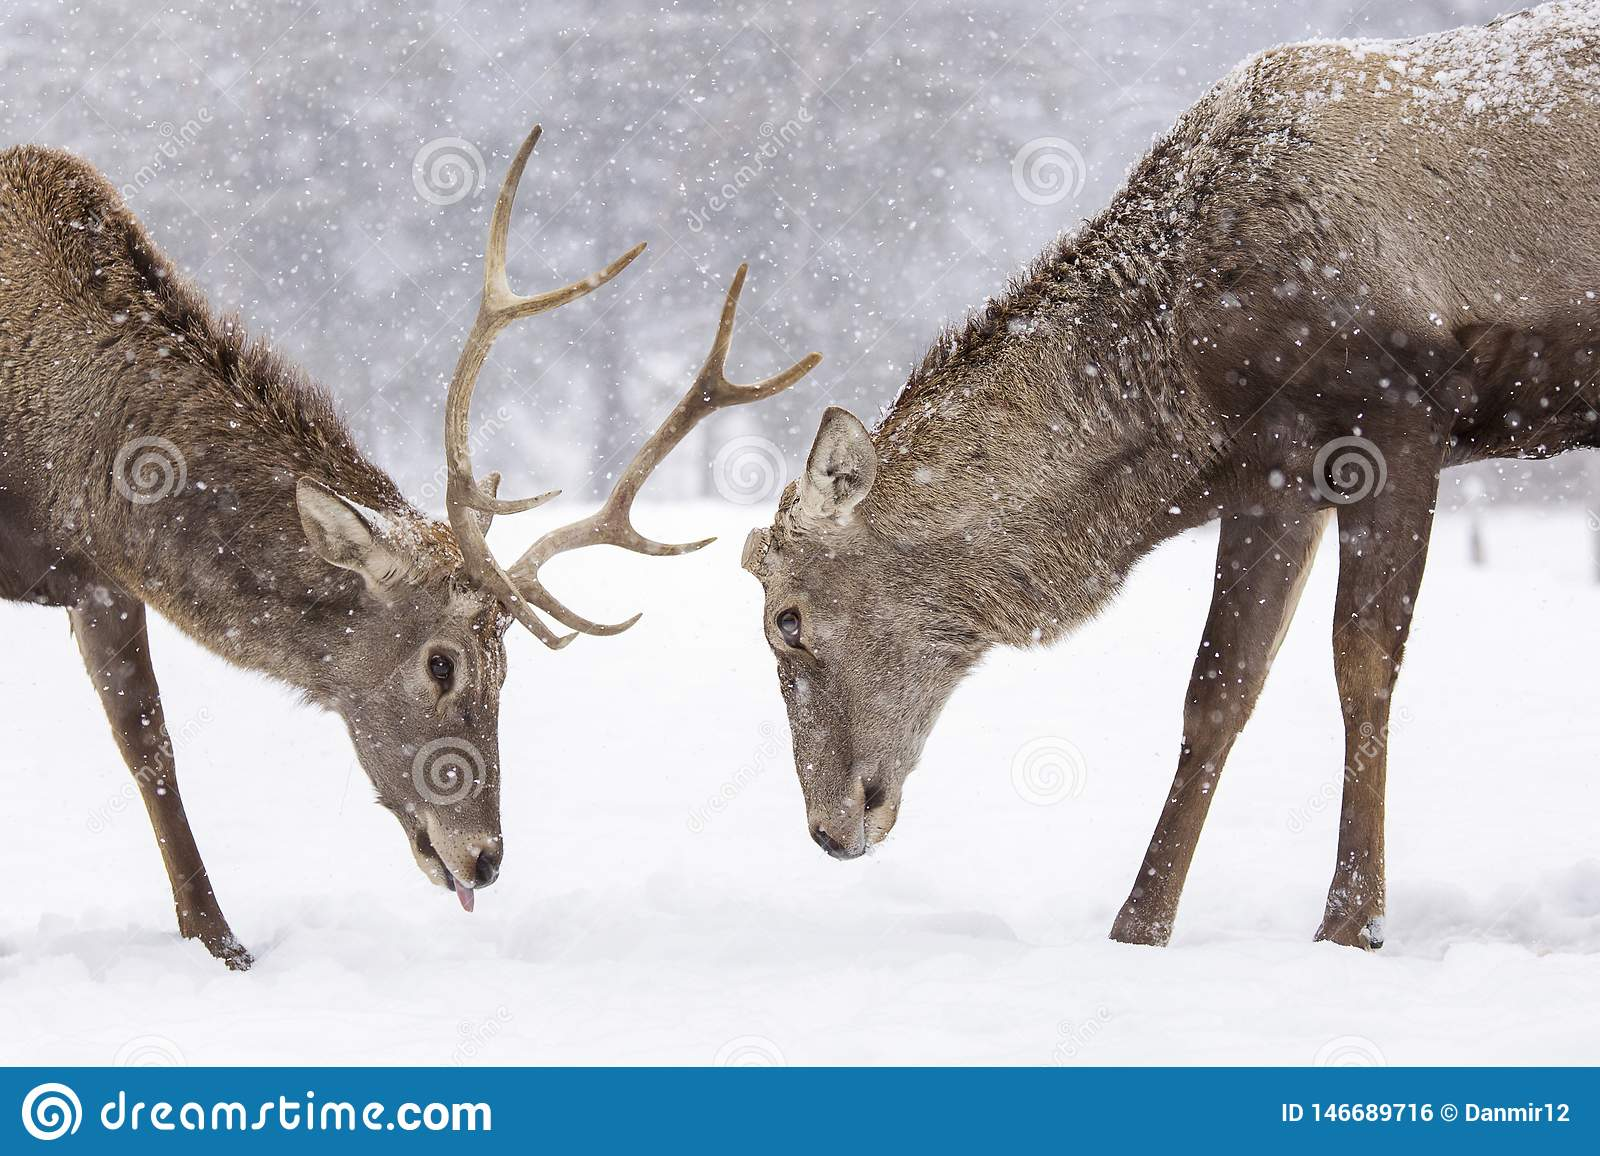 Two deers fighting in nater with forest in background in winter season and snowing